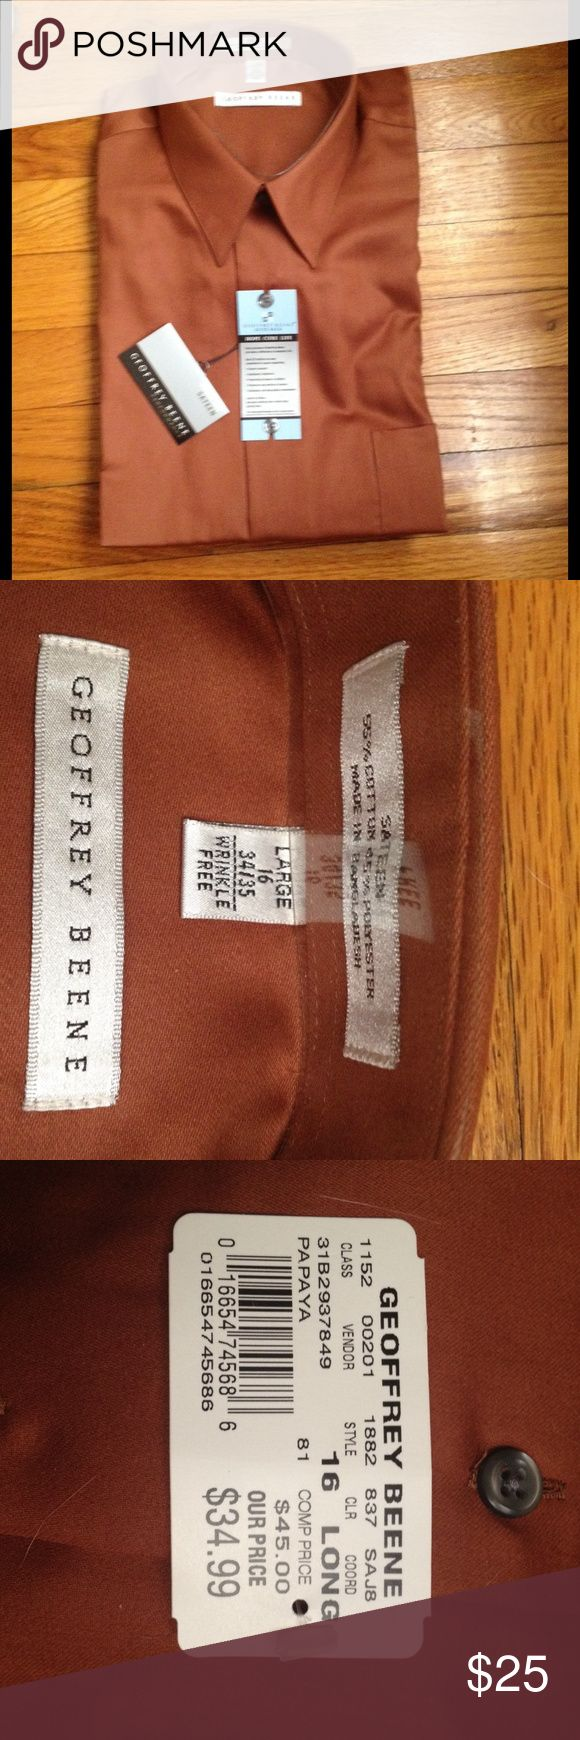 NWT Geoffrey Beene Wrinkle Free Sateen shirt 16L Beautiful Geoffrey Beene NWT wrinkle free sateen long sleeve shirt.  Cooper brown color. Large 16 34/35 long. New with a bag. Geoffrey Beene Shirts Dress Shirts